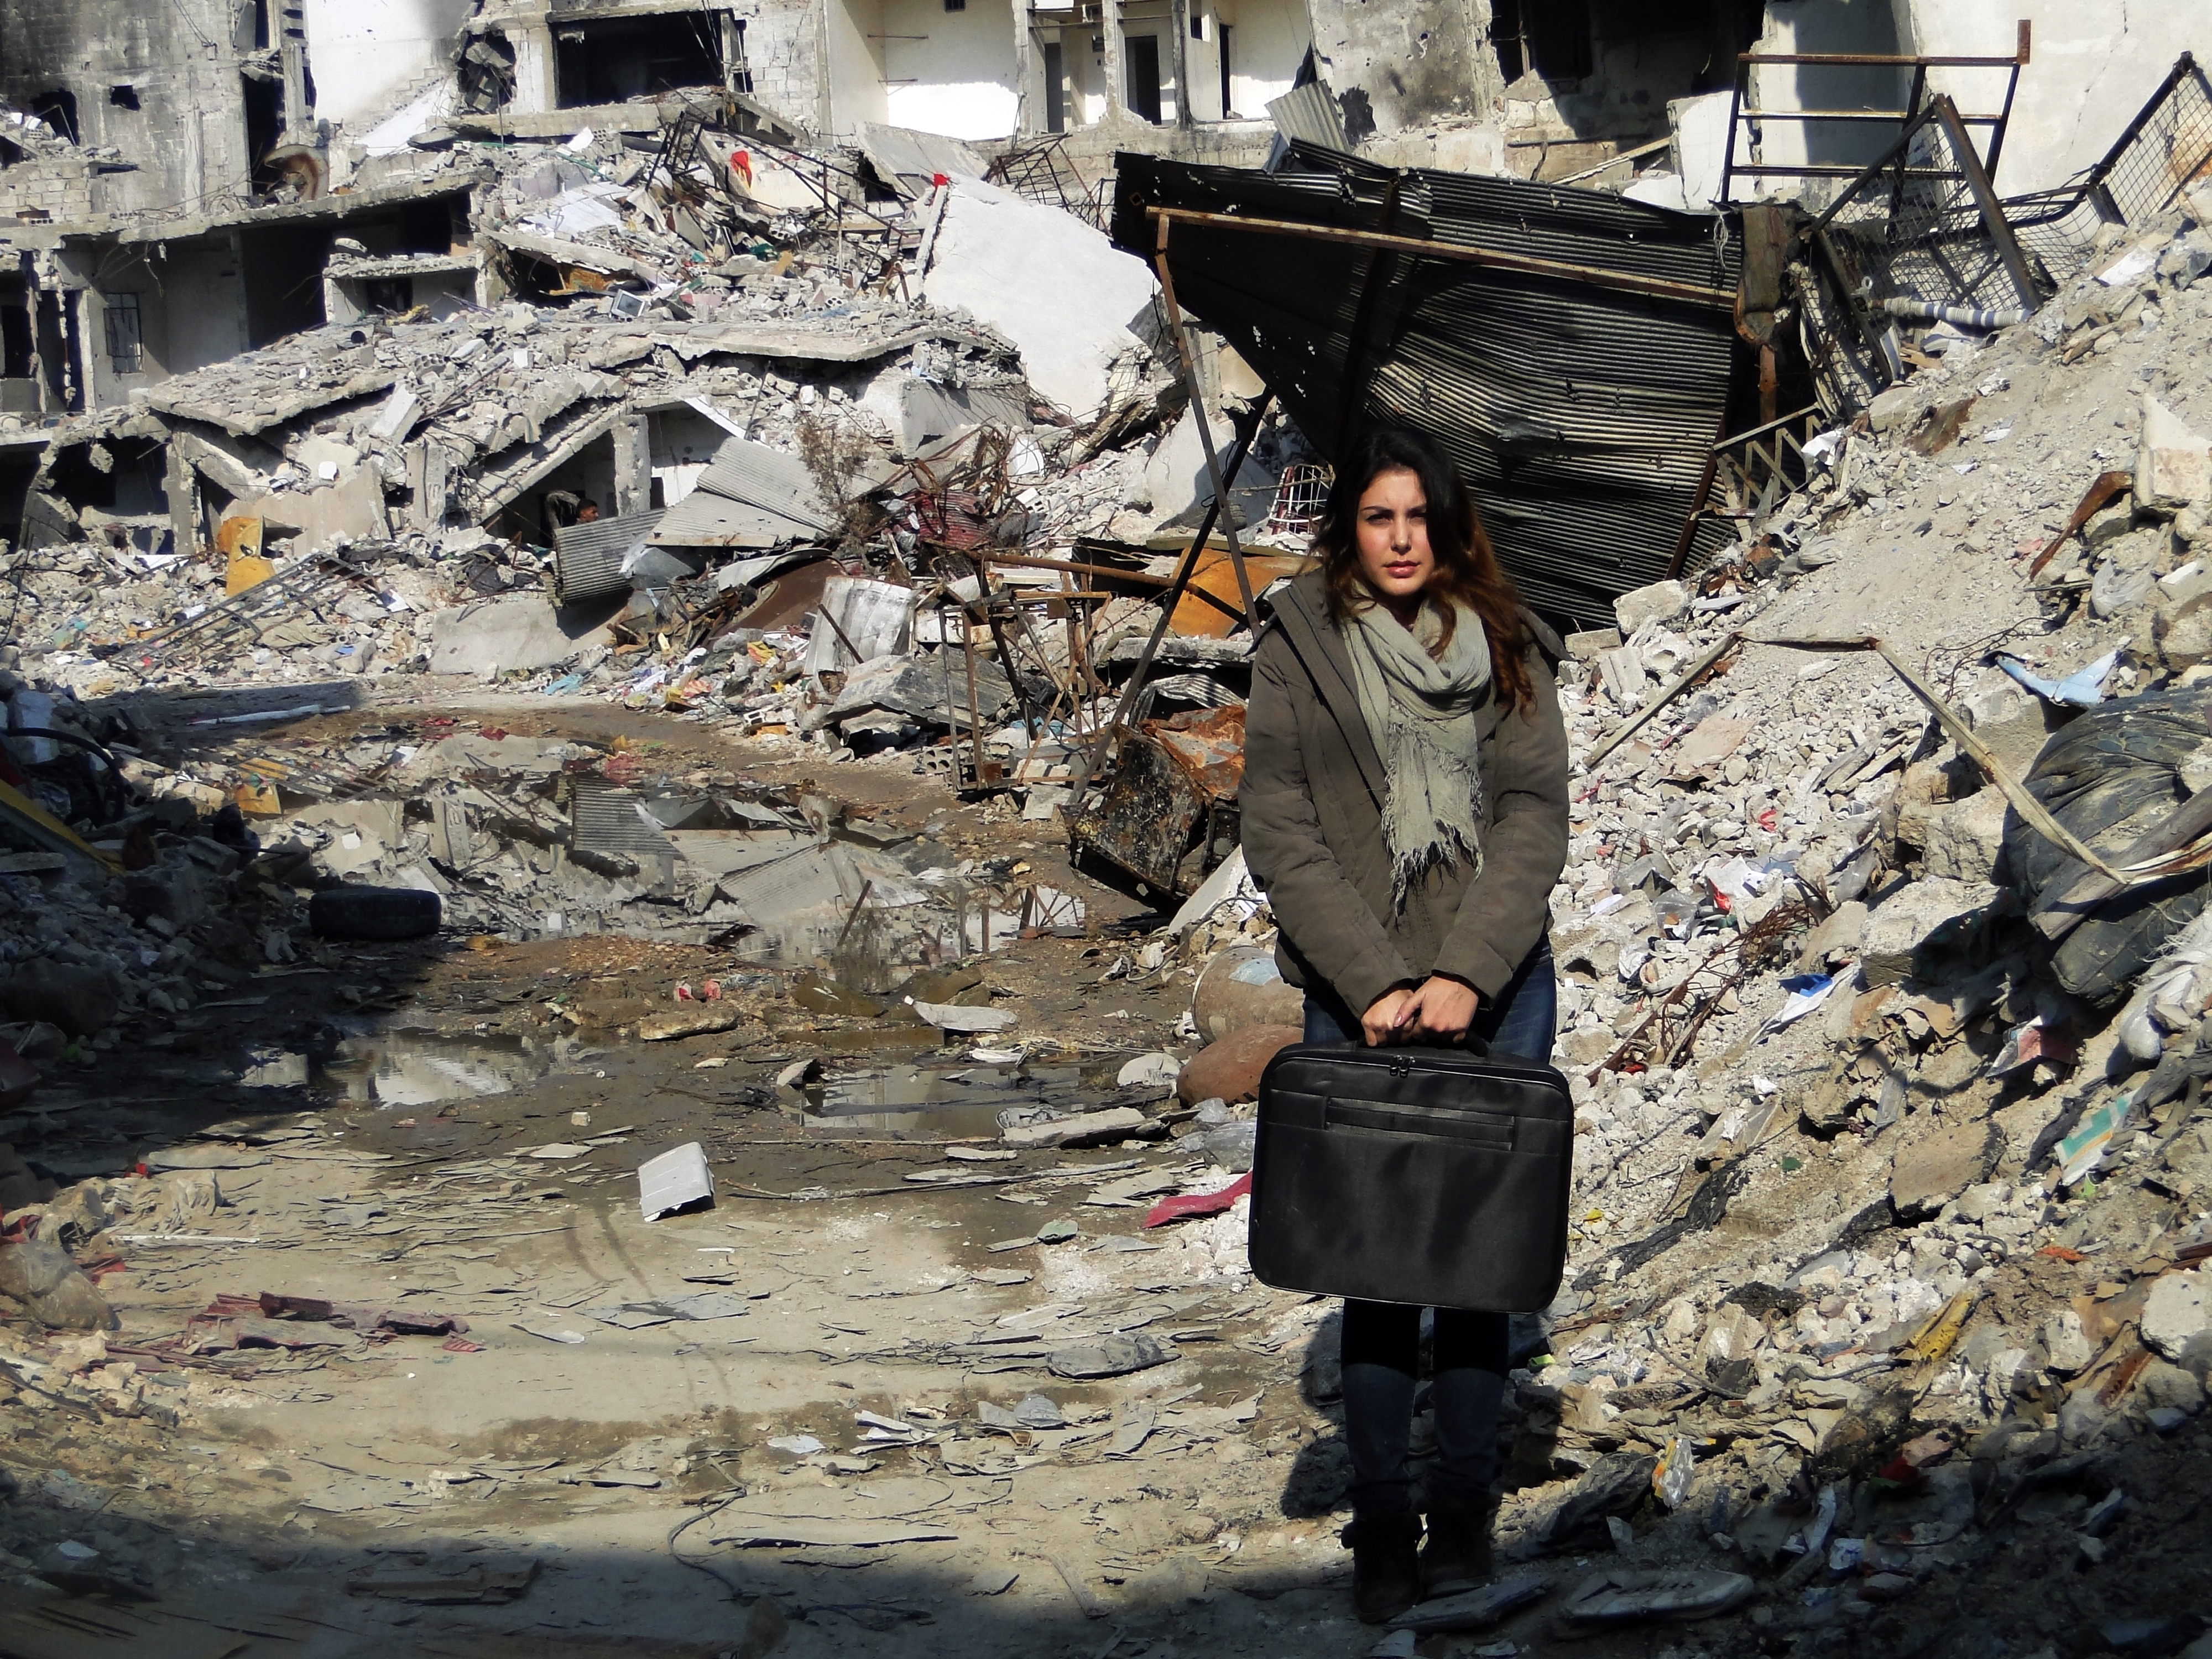 Abeer standing amidst the ruins. Photo credit: SOS Children's Villages